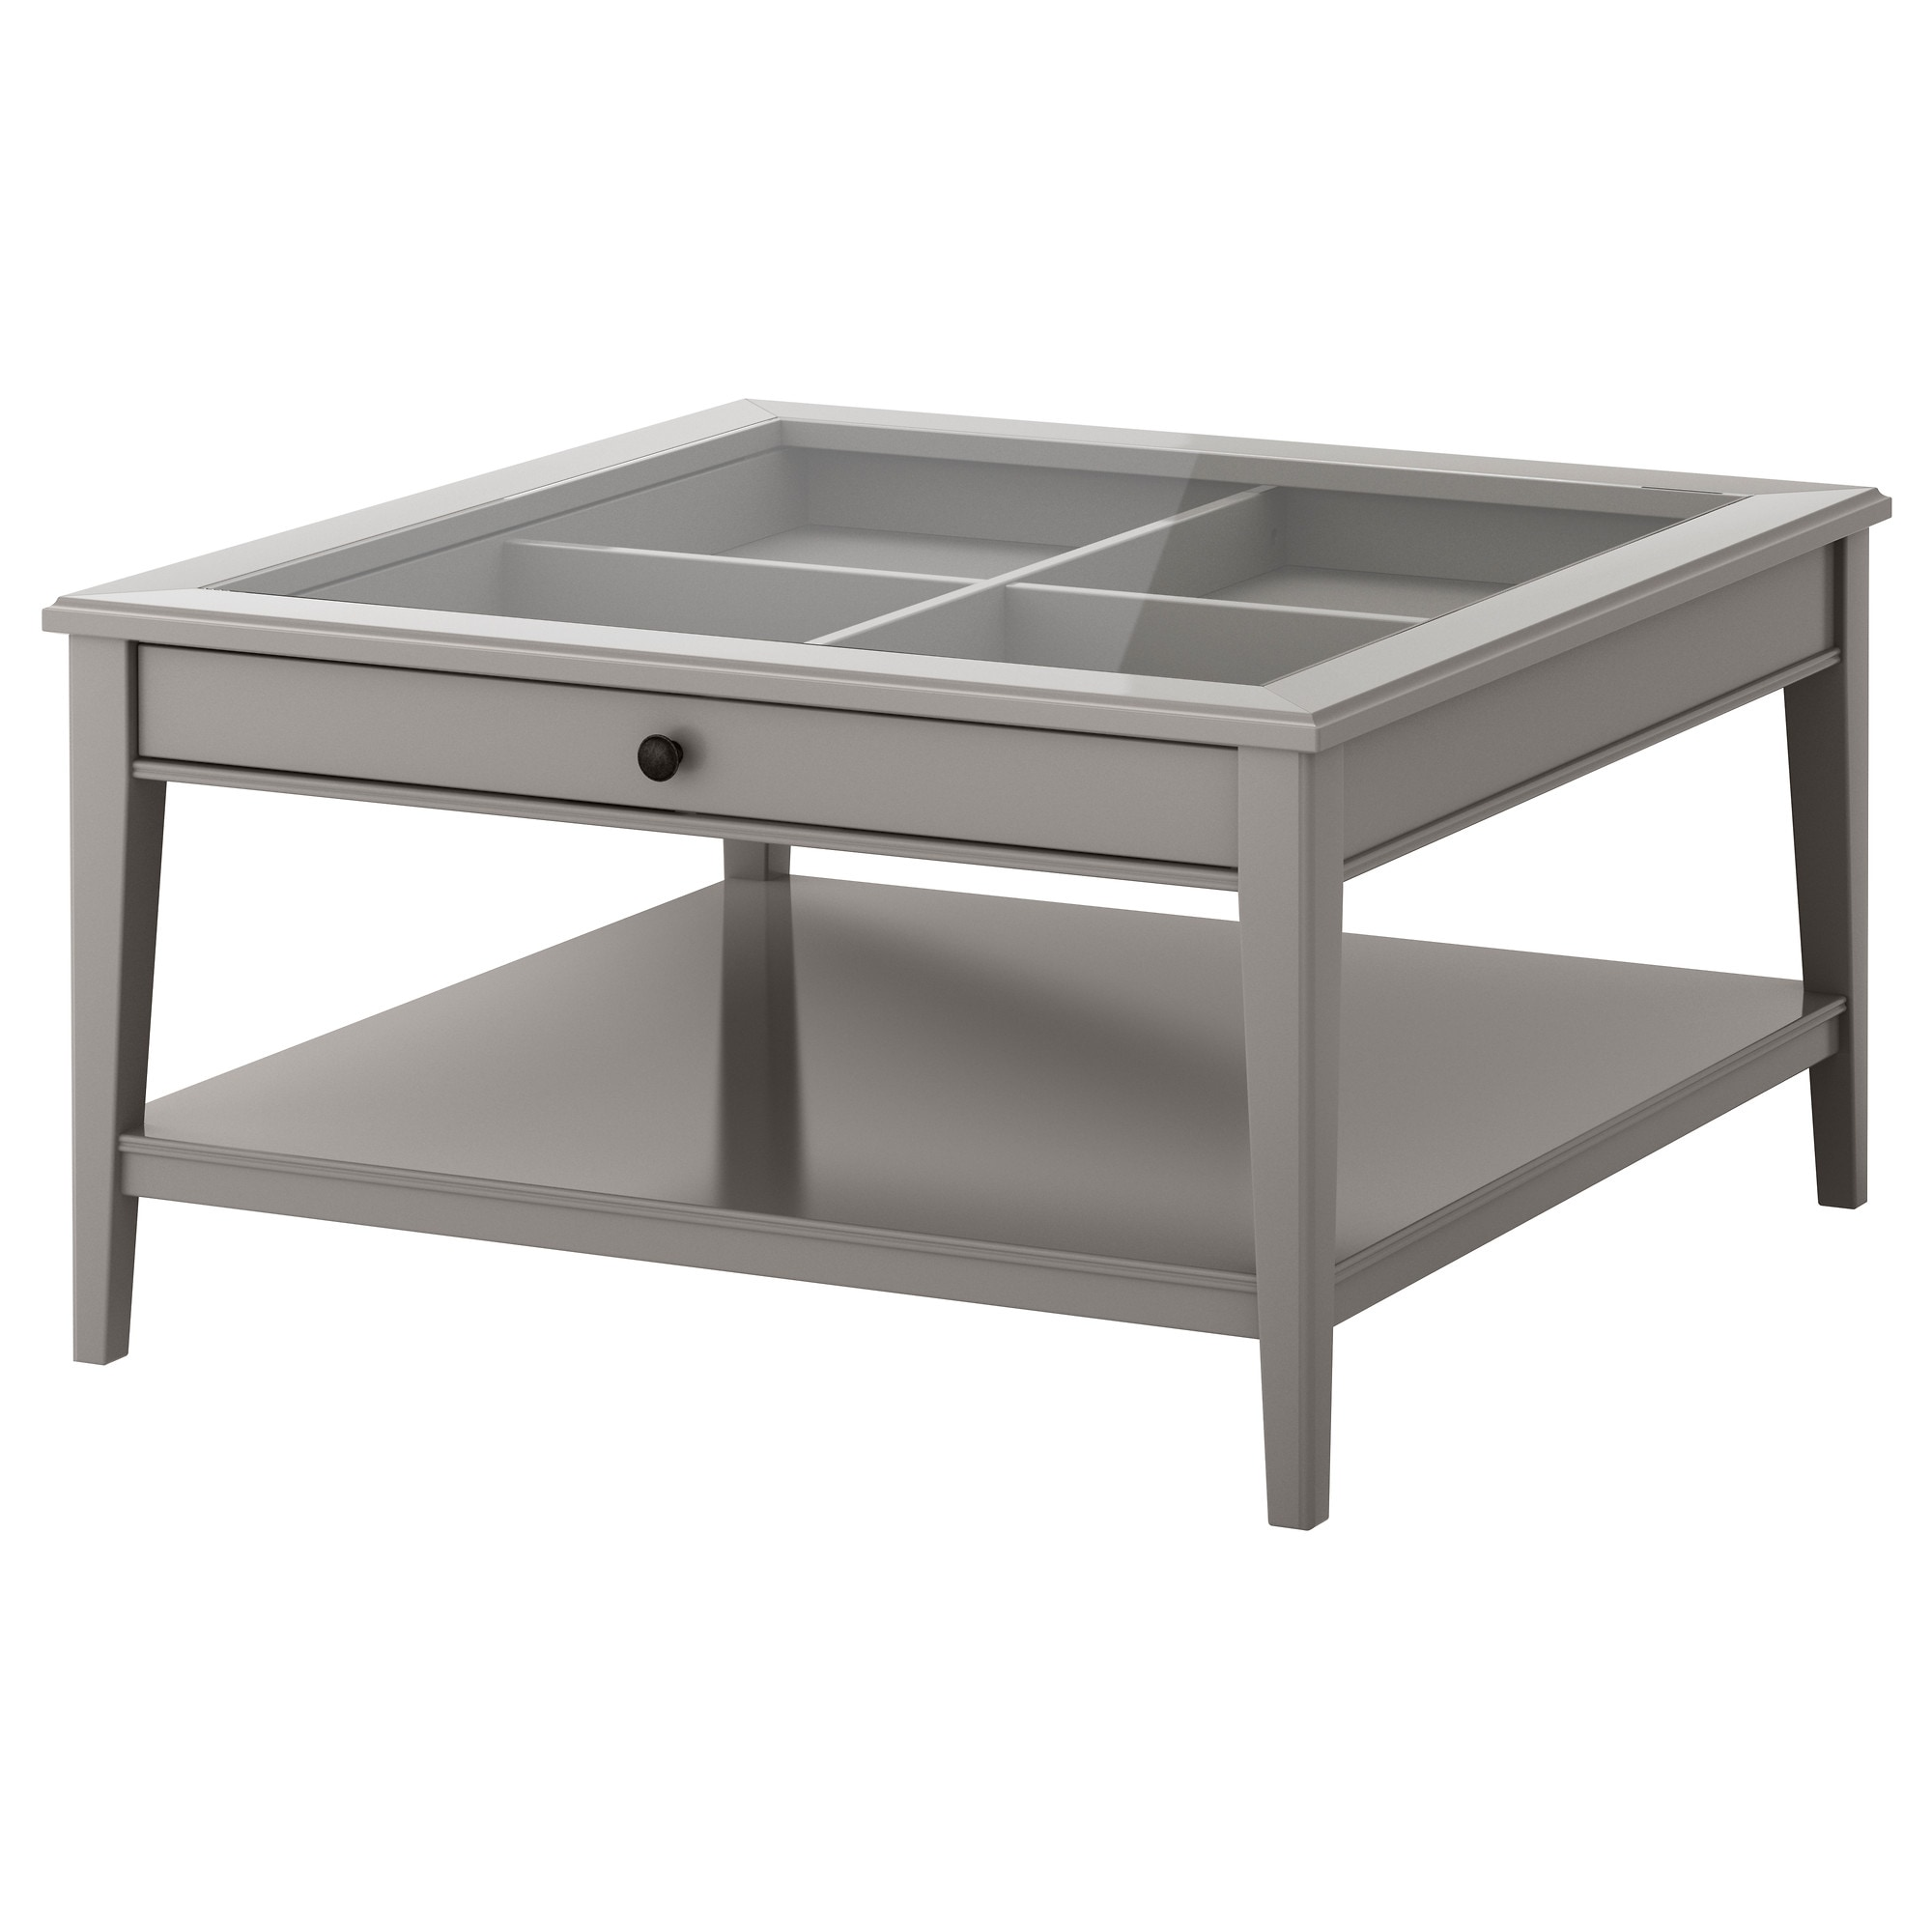 LIATORP Coffee table gray glass IKEA